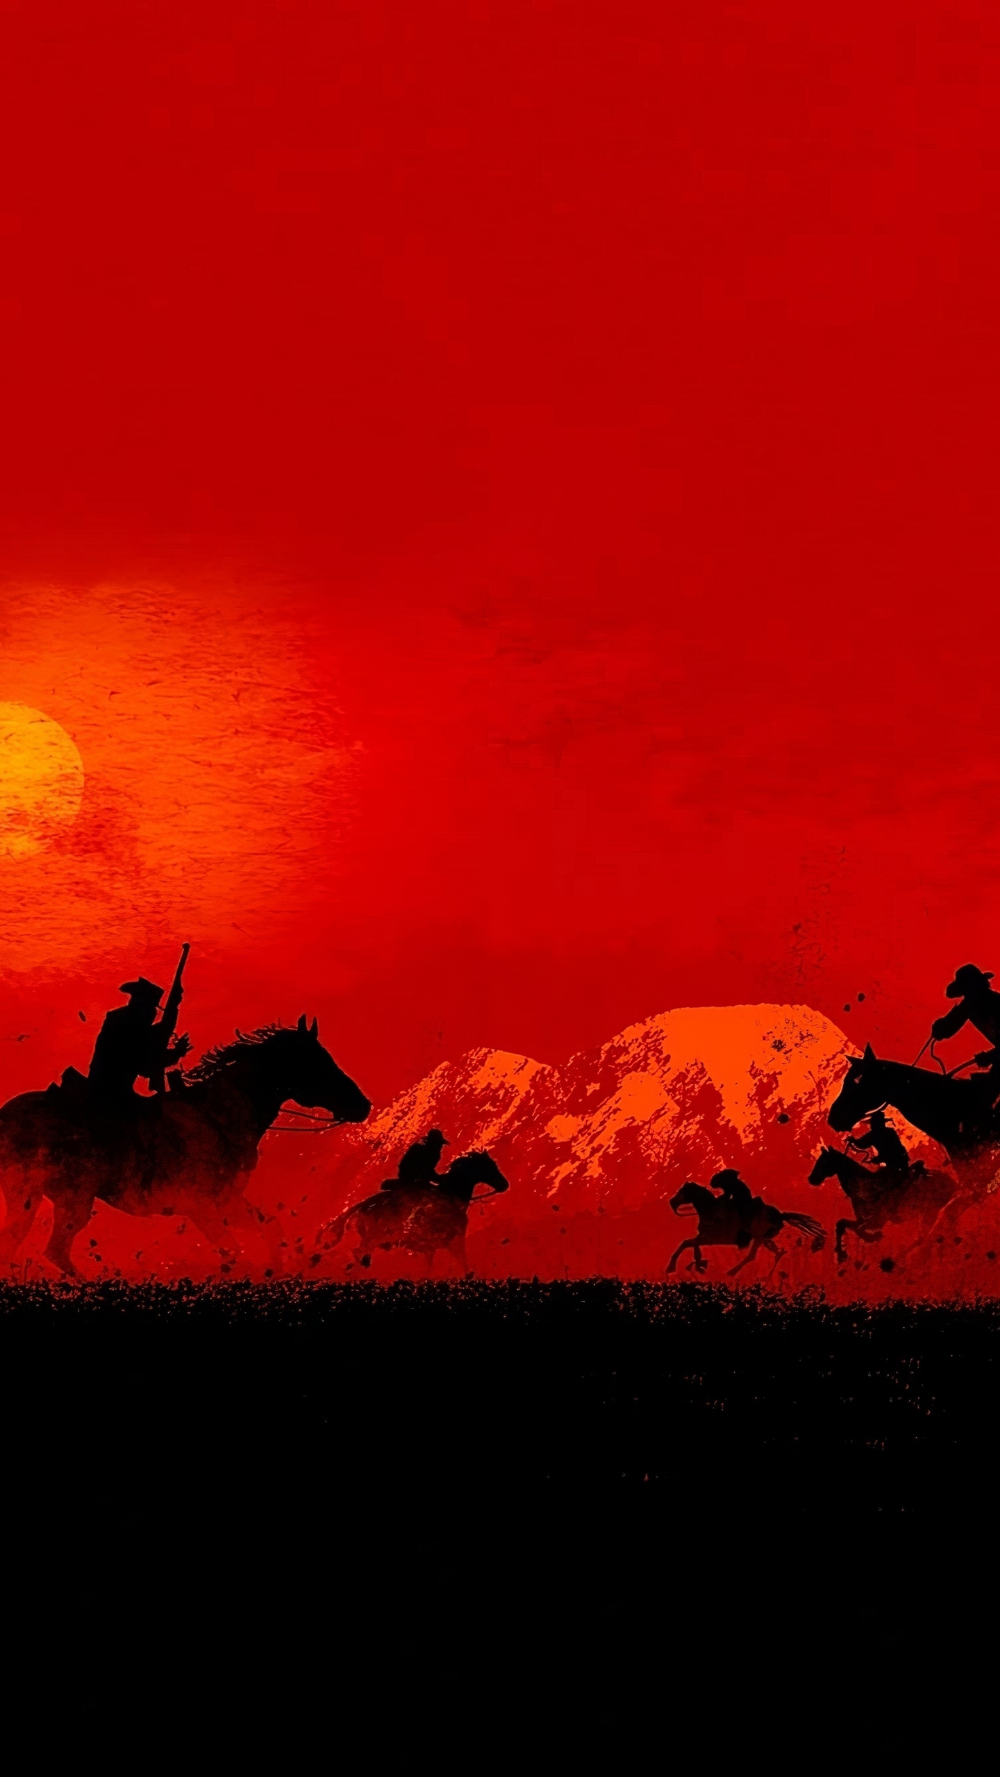 1440x2560 Red Dead Redemption 2 Cowboys Game 2019 Wallpaper Red Dead Redemption Red Dead Redemption Art Gaming Wallpapers